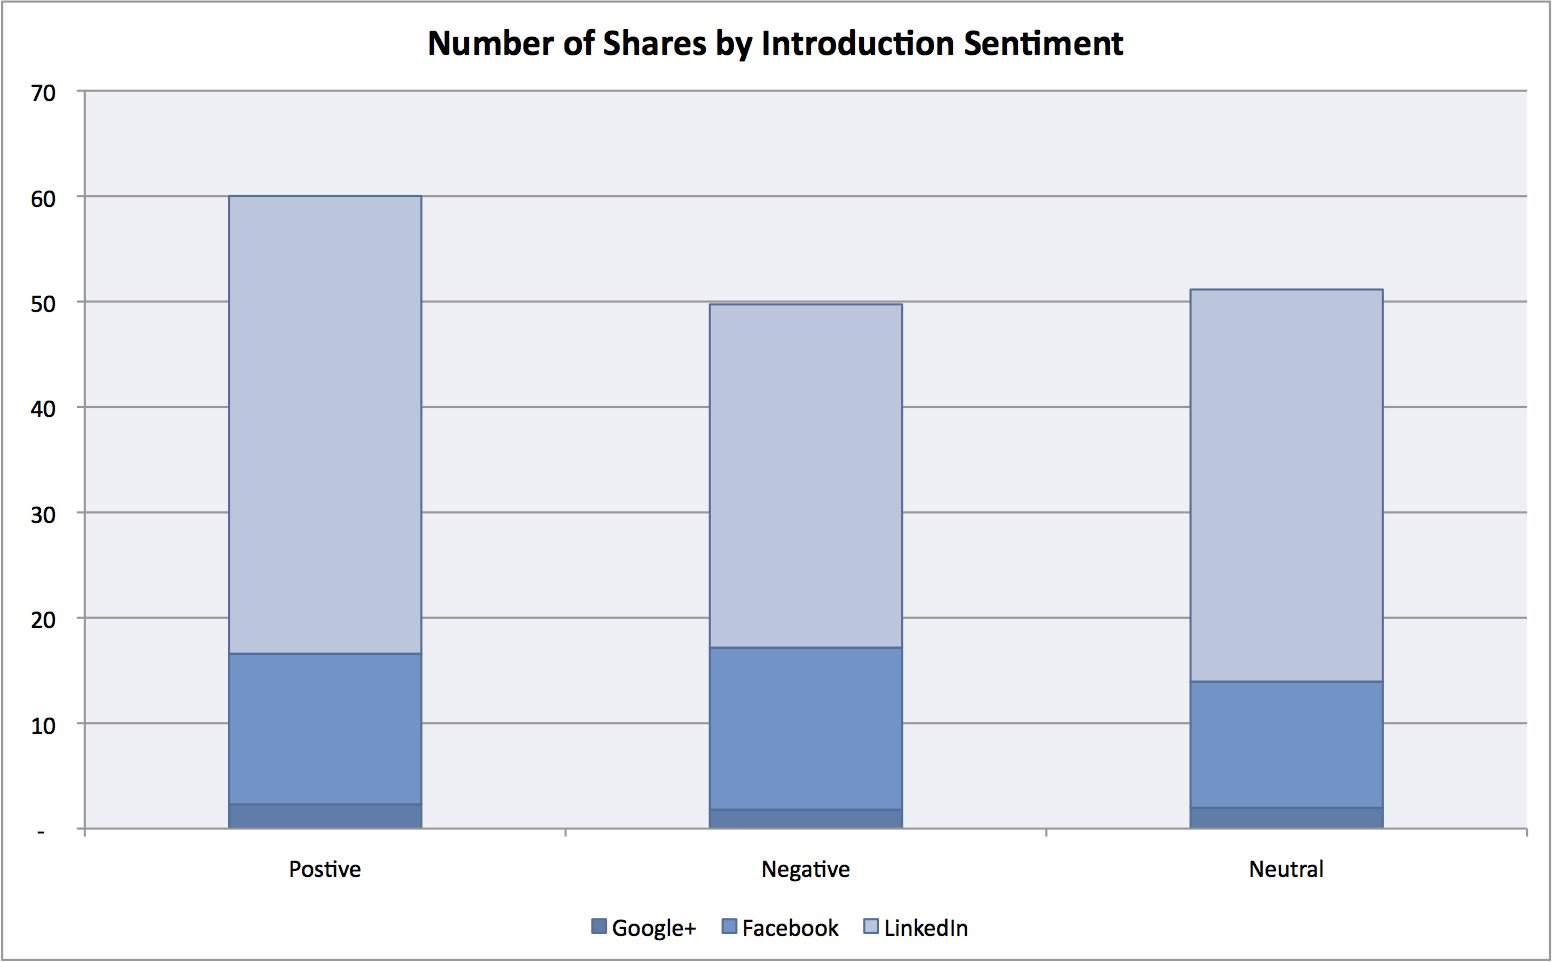 Shares by Introduction Sentiment